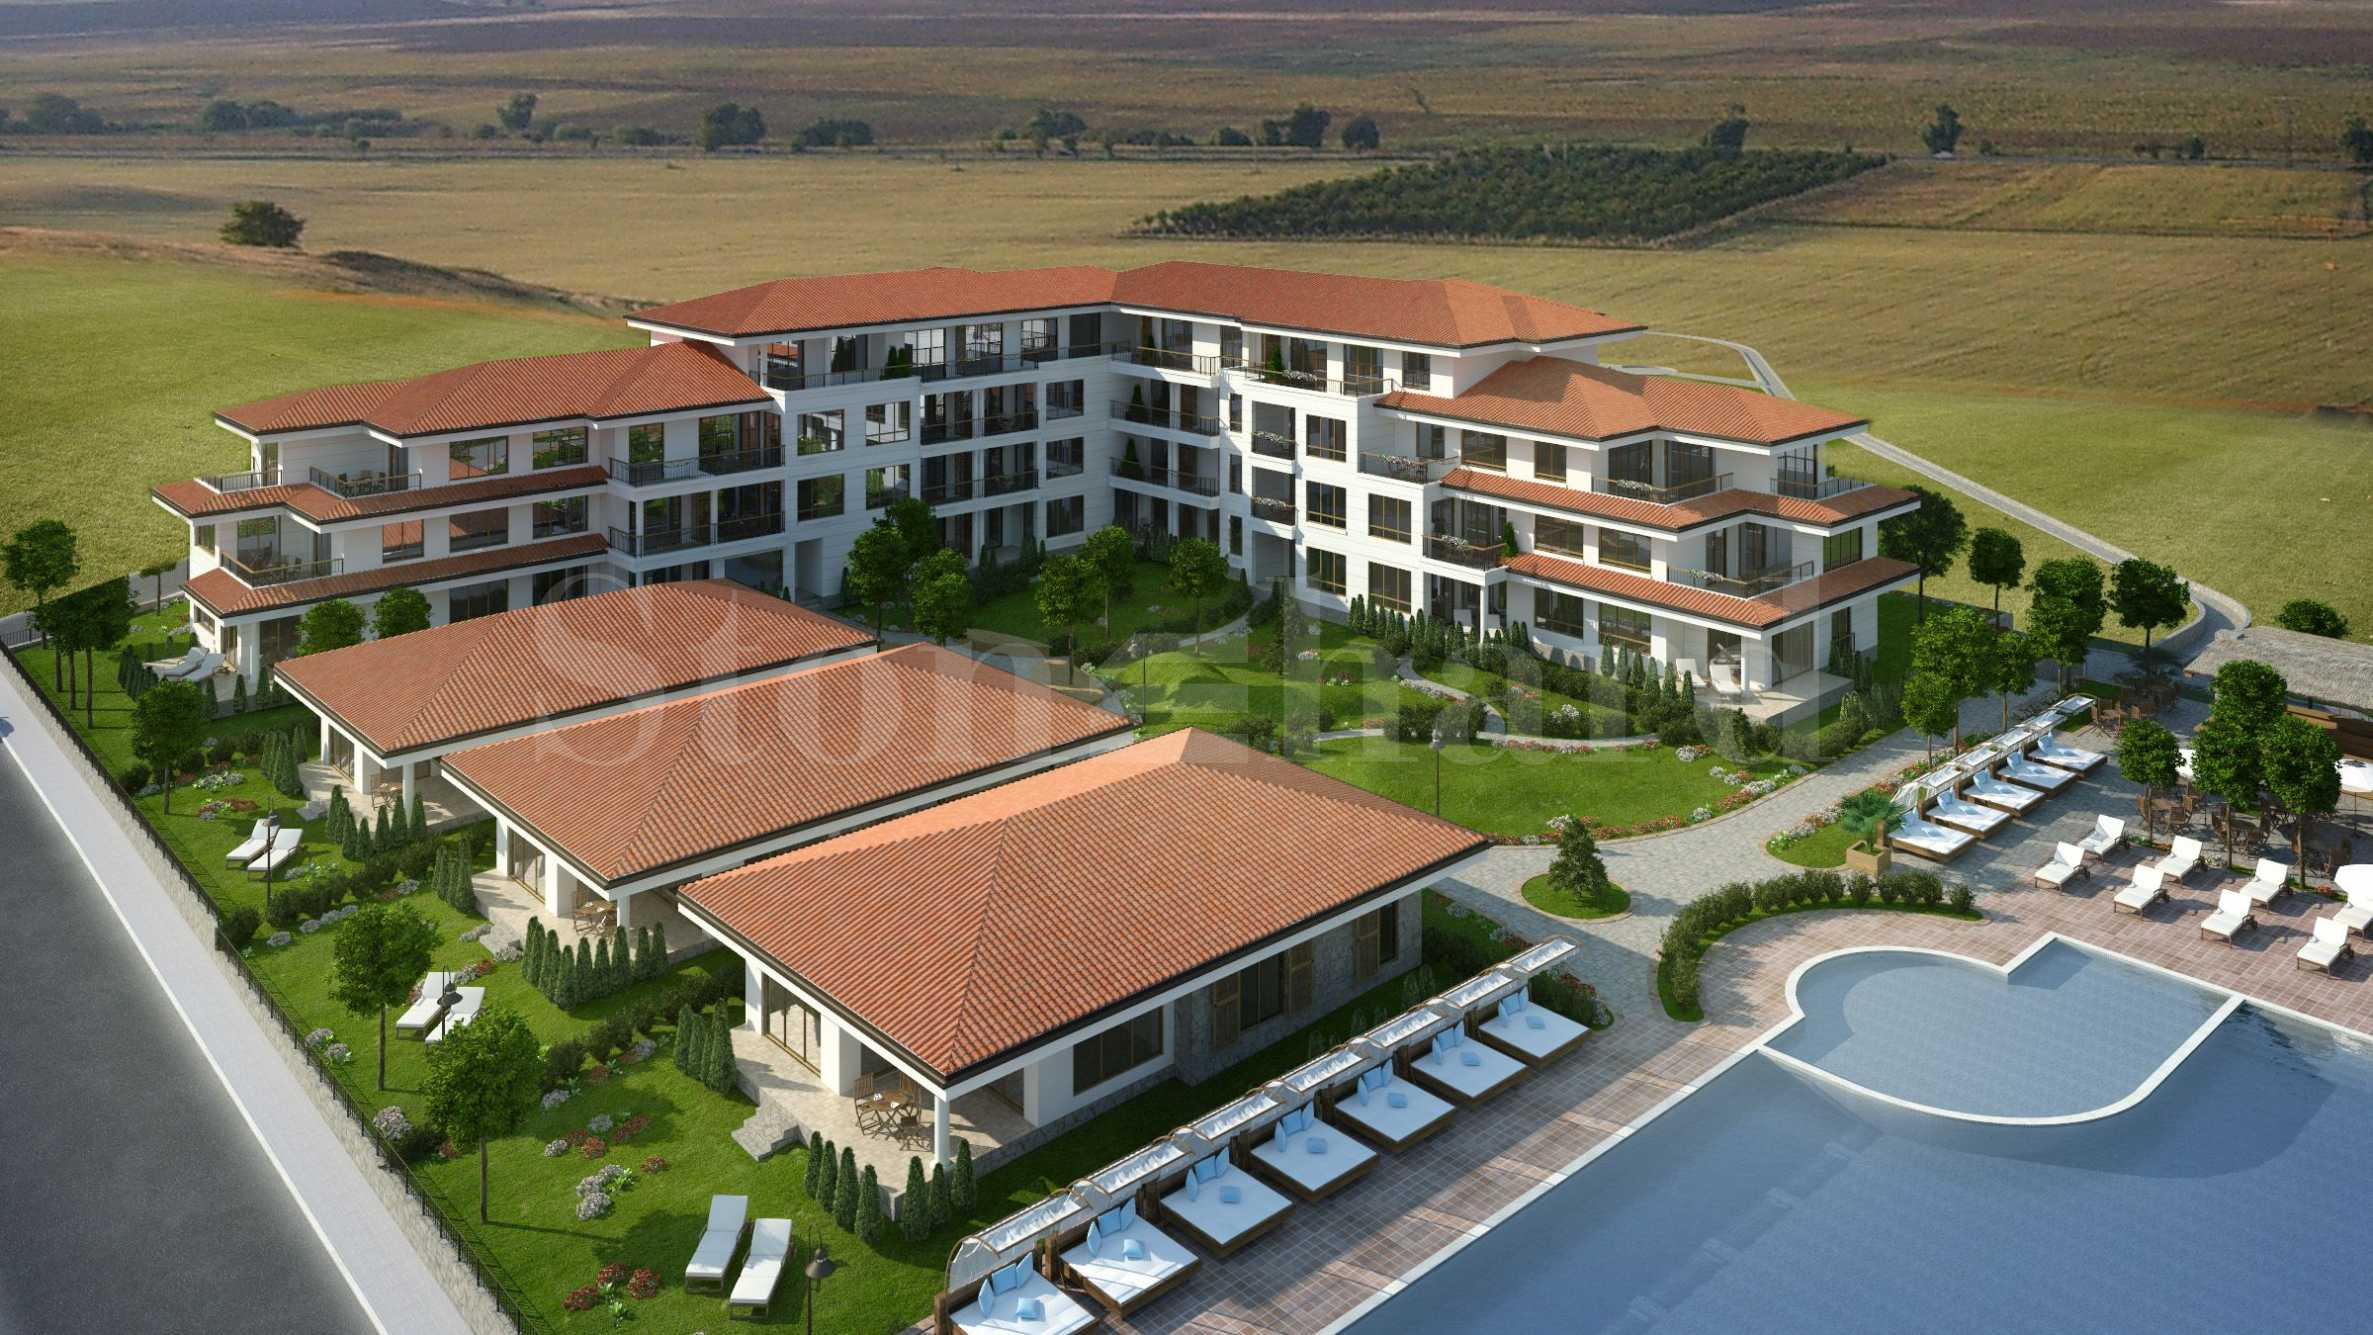 New apartments in an eco-friendly seaside area - a pleasant terraced design complex with sea views, near Aheloy1 - Stonehard